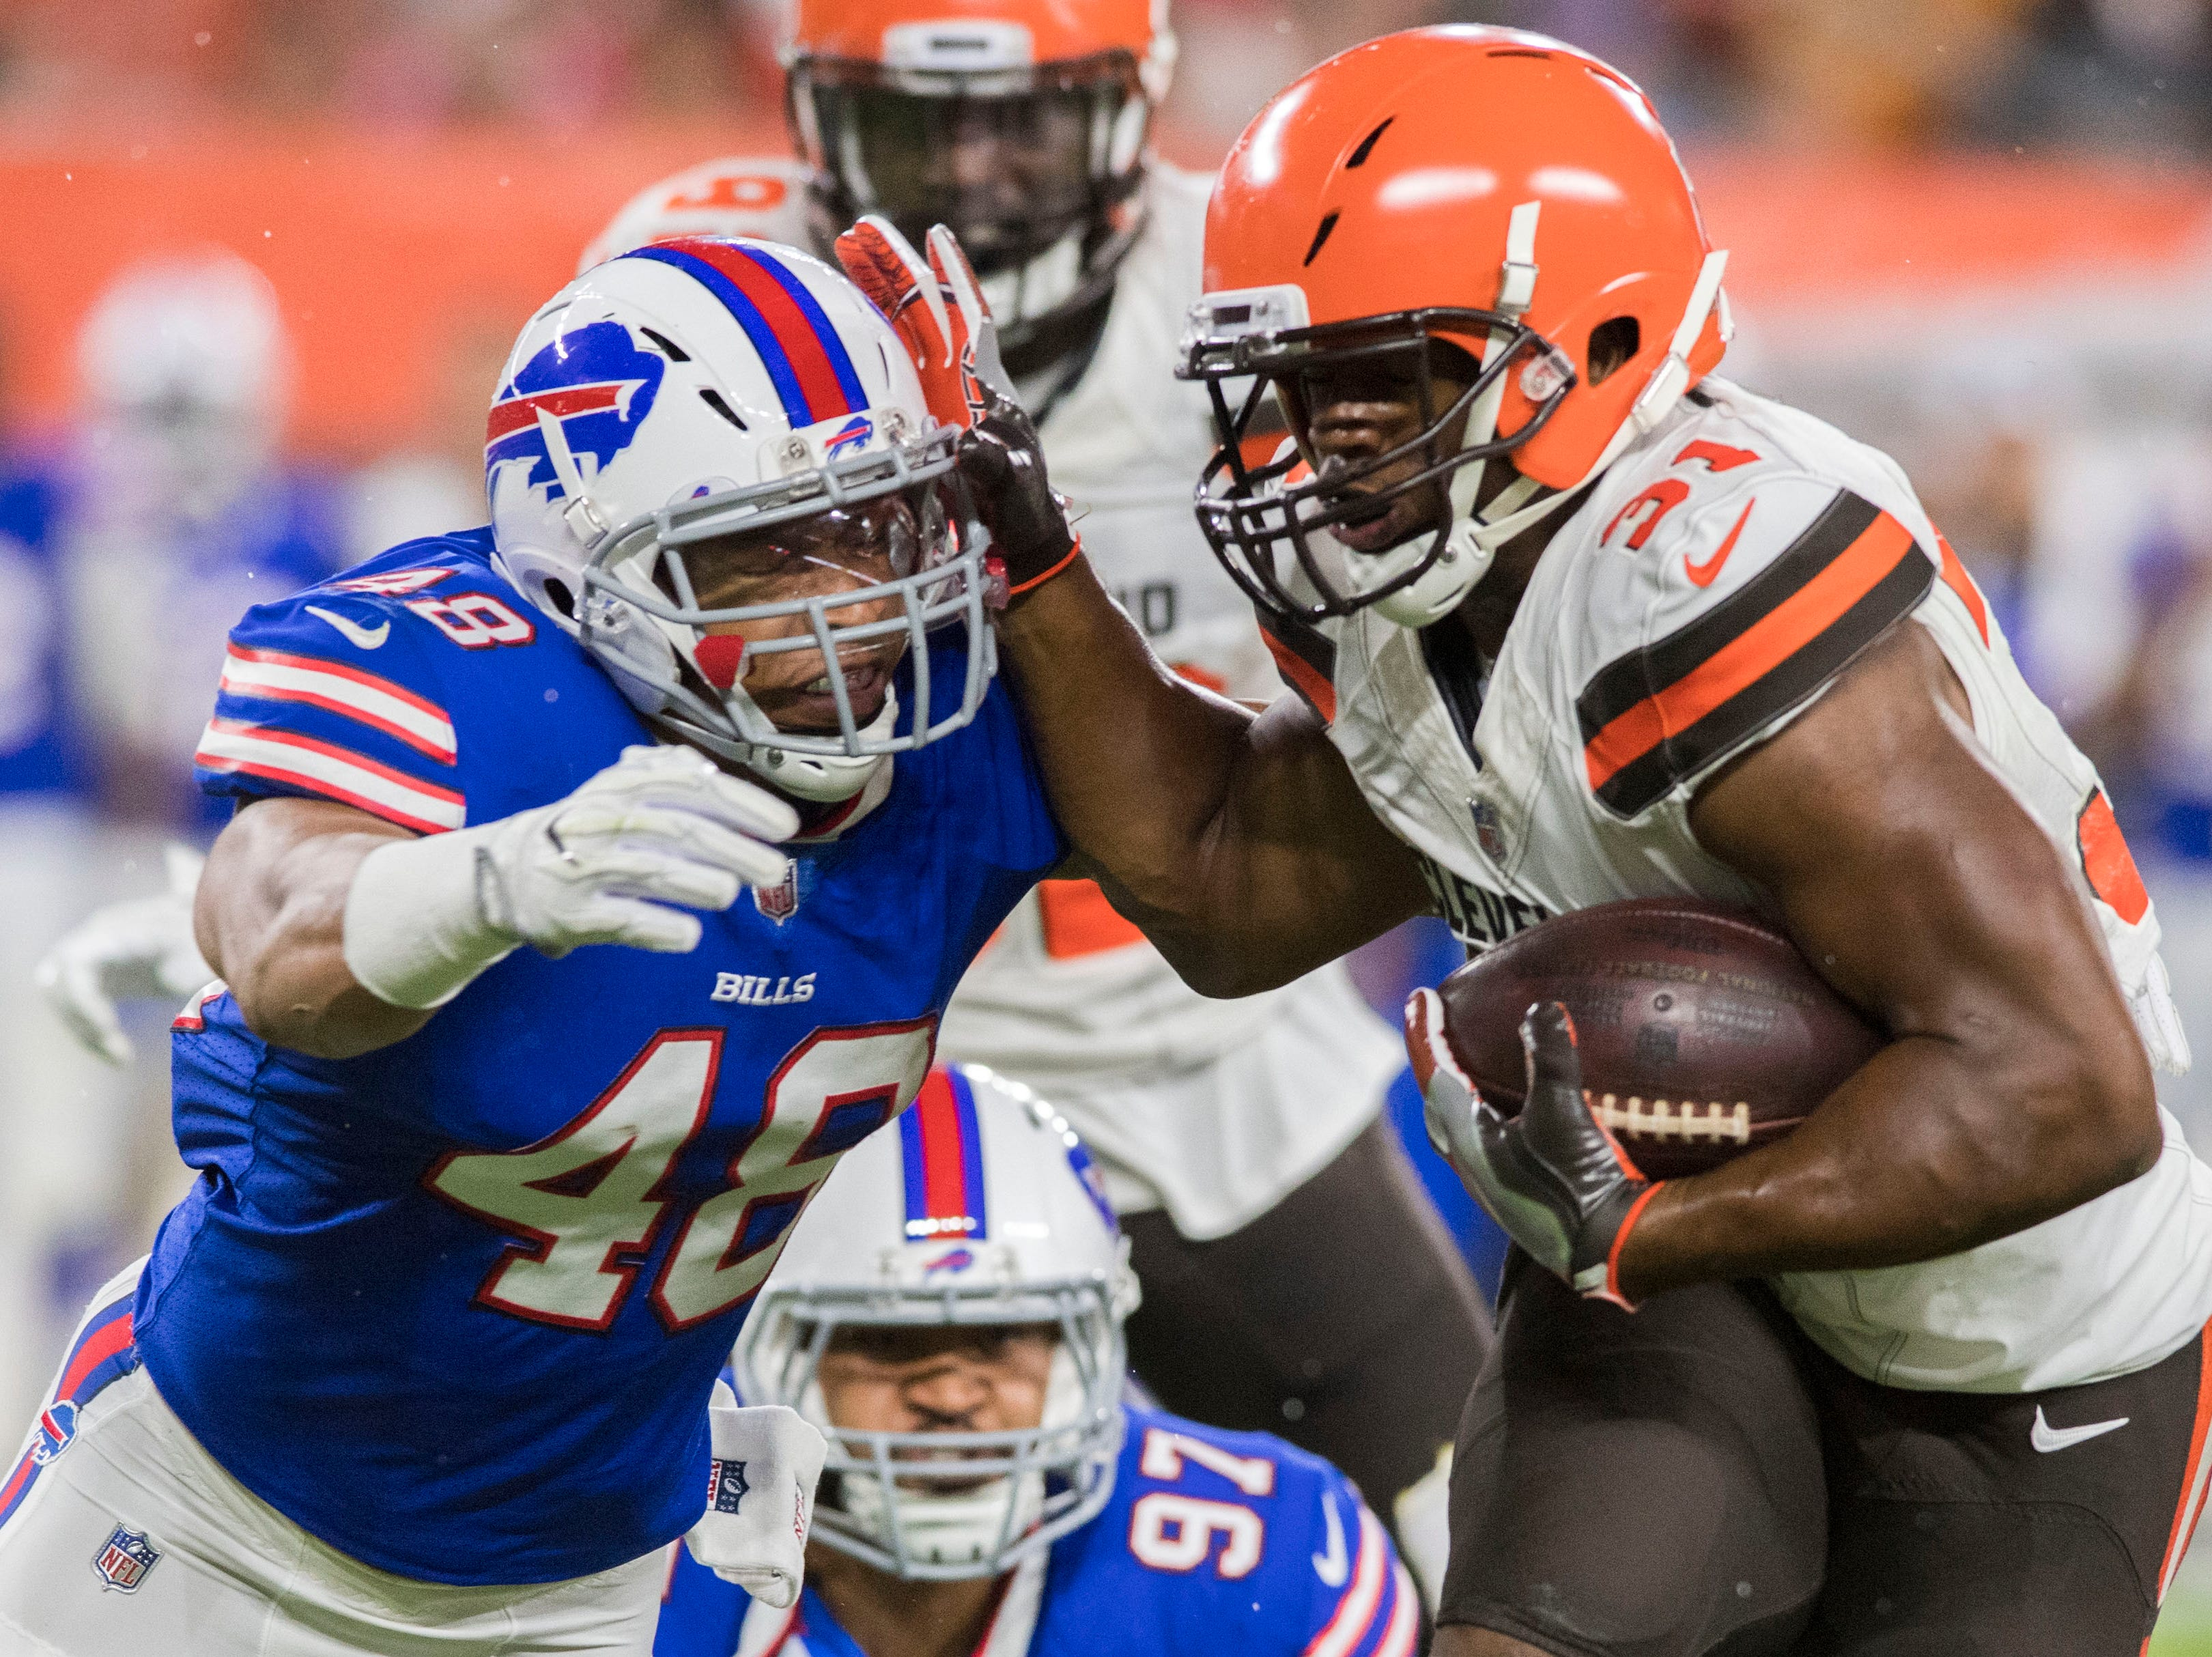 Cleveland Browns running back Nick Chubb (31) runs with the ball against Buffalo Bills linebacker Keenan Robinson (48) during the second half at FirstEnergy Stadium.